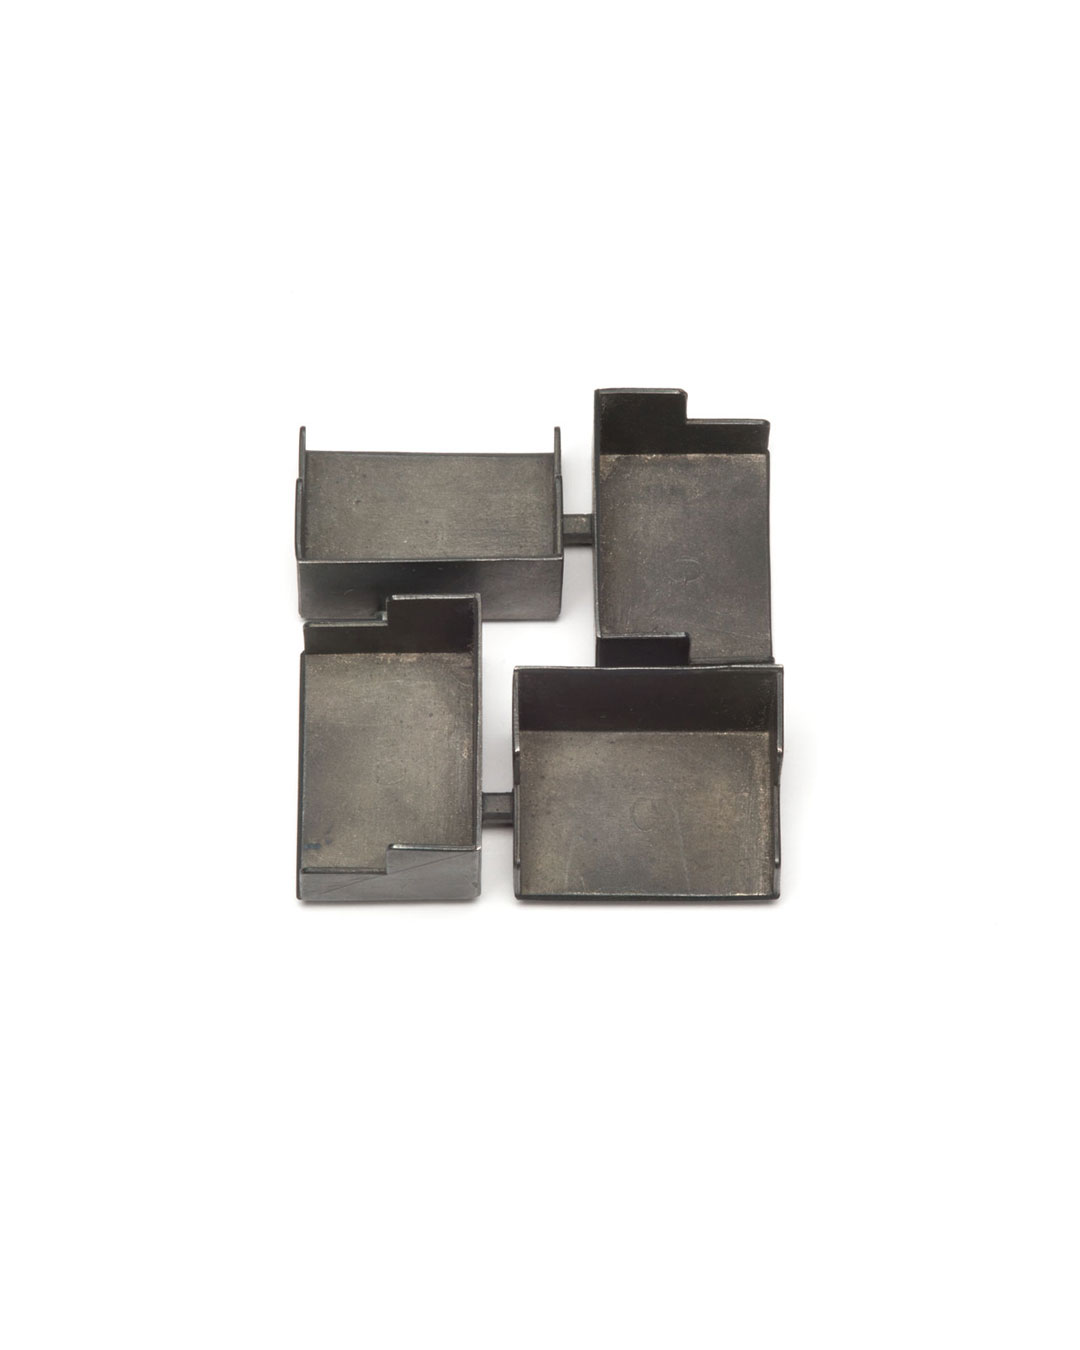 Winfried Krüger, untitled, 2008, brooch; oxidised silver, 75 x 75 mm, €2180